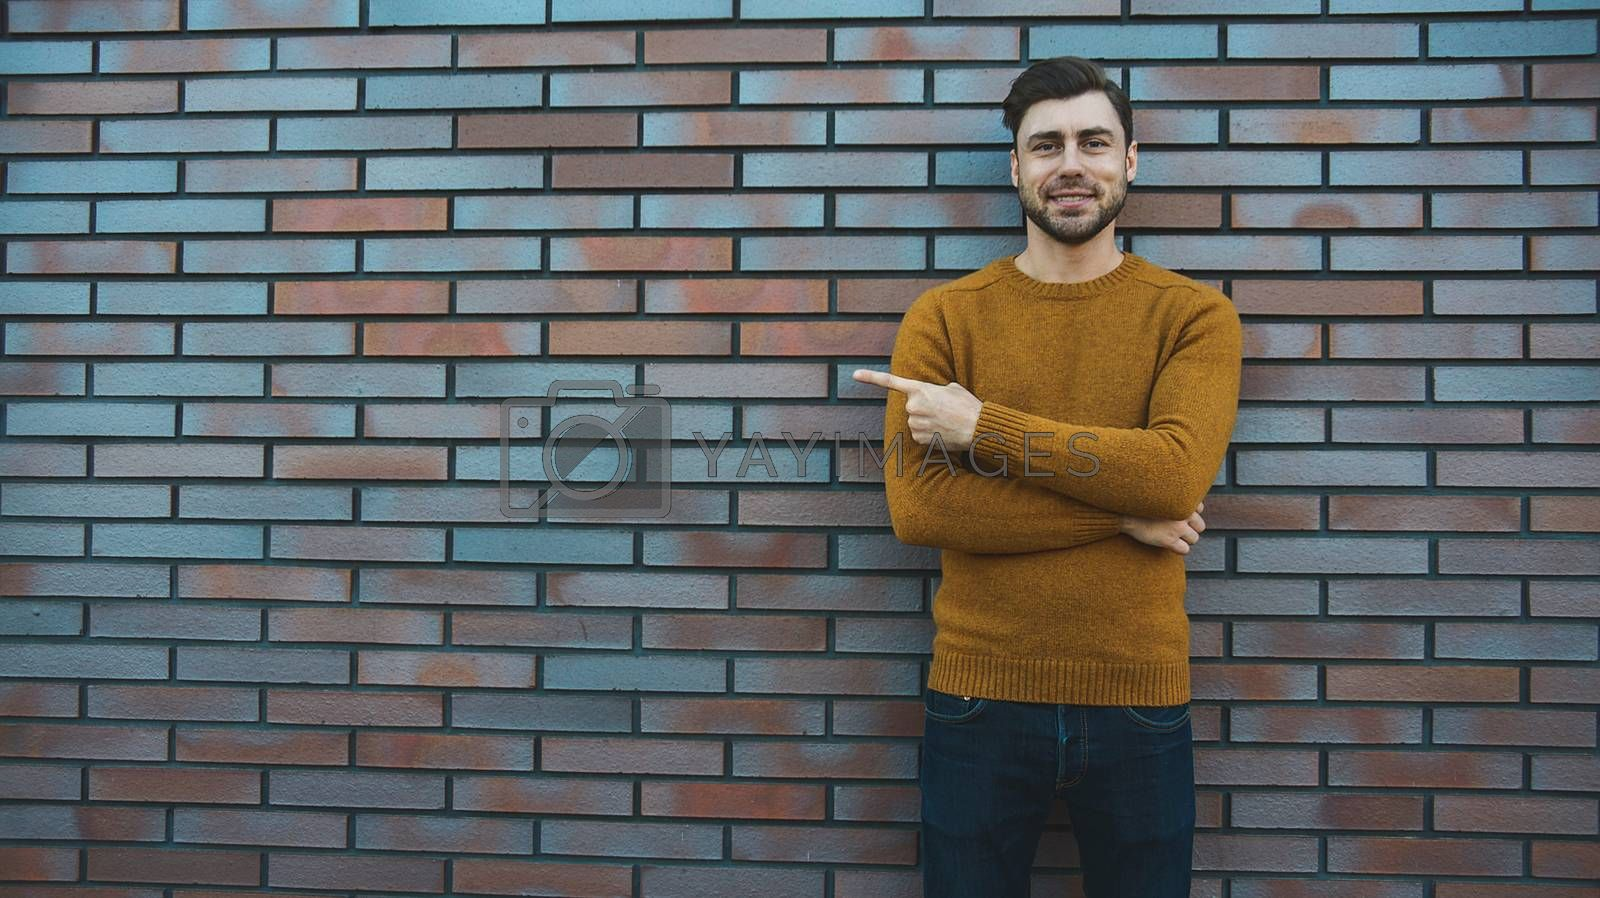 The horizontal look of an attractive young man who advertises something new, points his finger to the side, stands against a brick wall. People and lifestyle